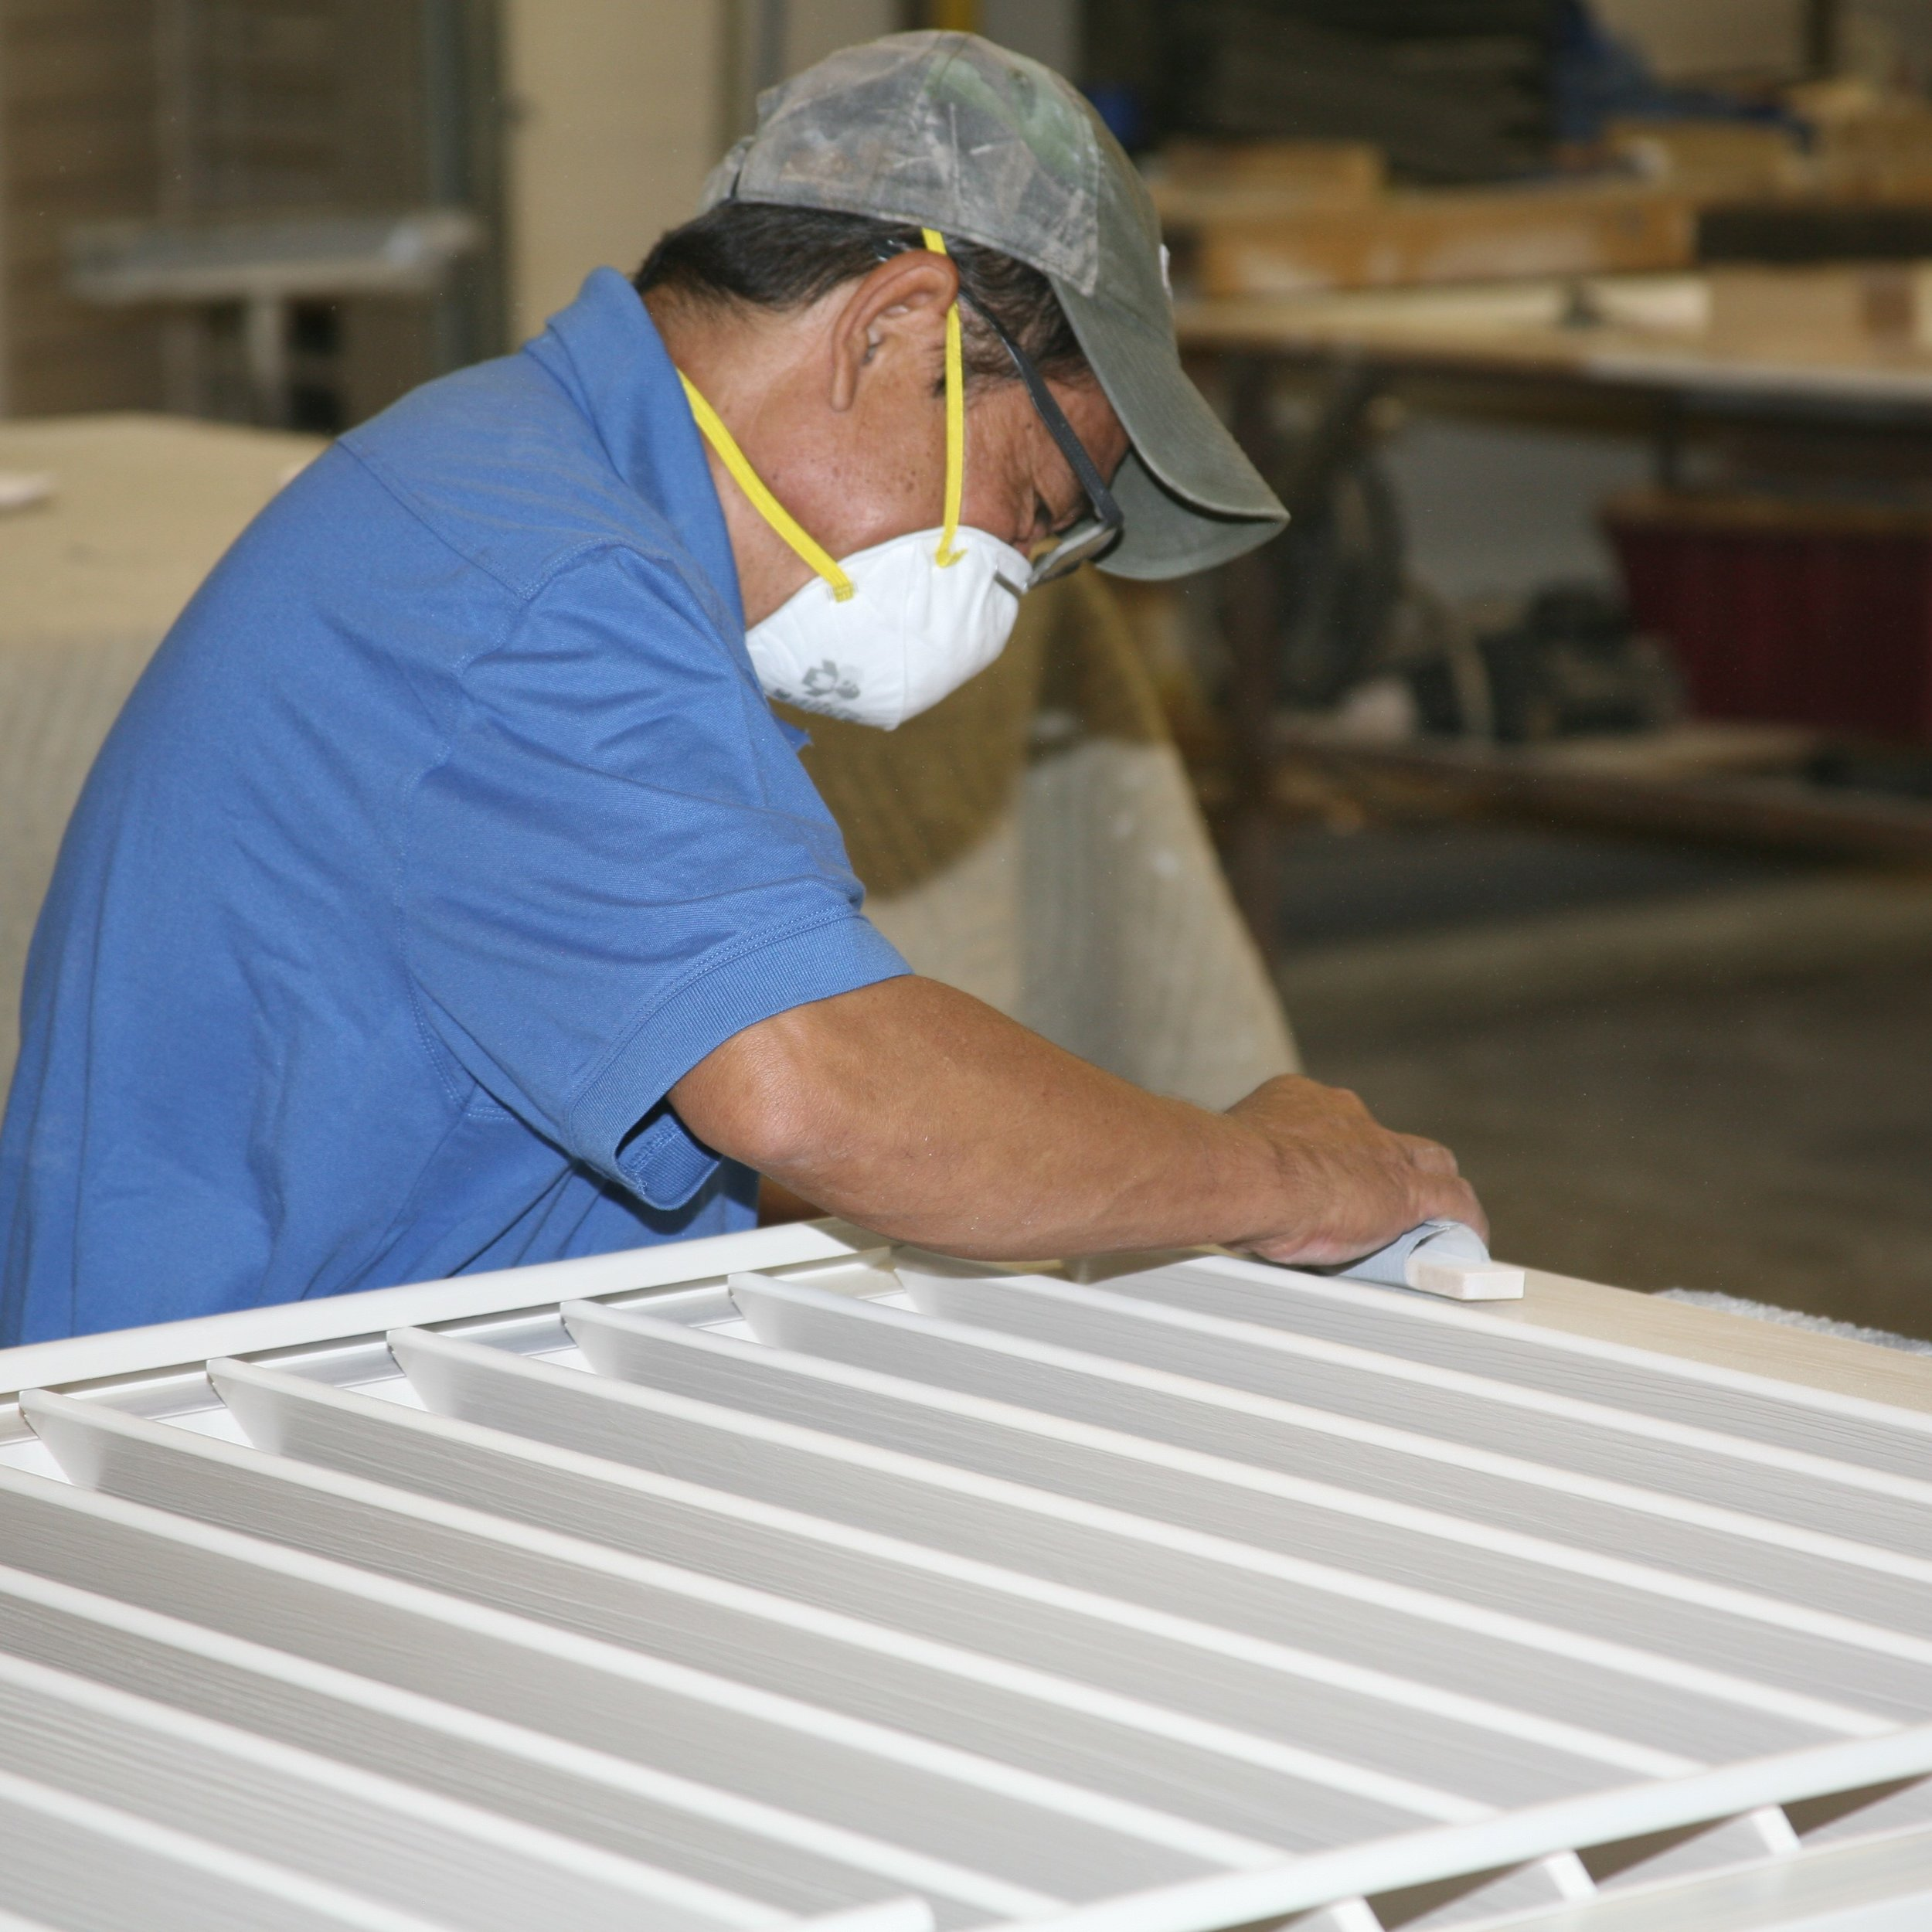 Victor - Victor has been in the window covering industry for 15 years, and handles all the framing of our shutters. Once designed, Victor cuts and sands all of our in-house built frames and shutter panels.